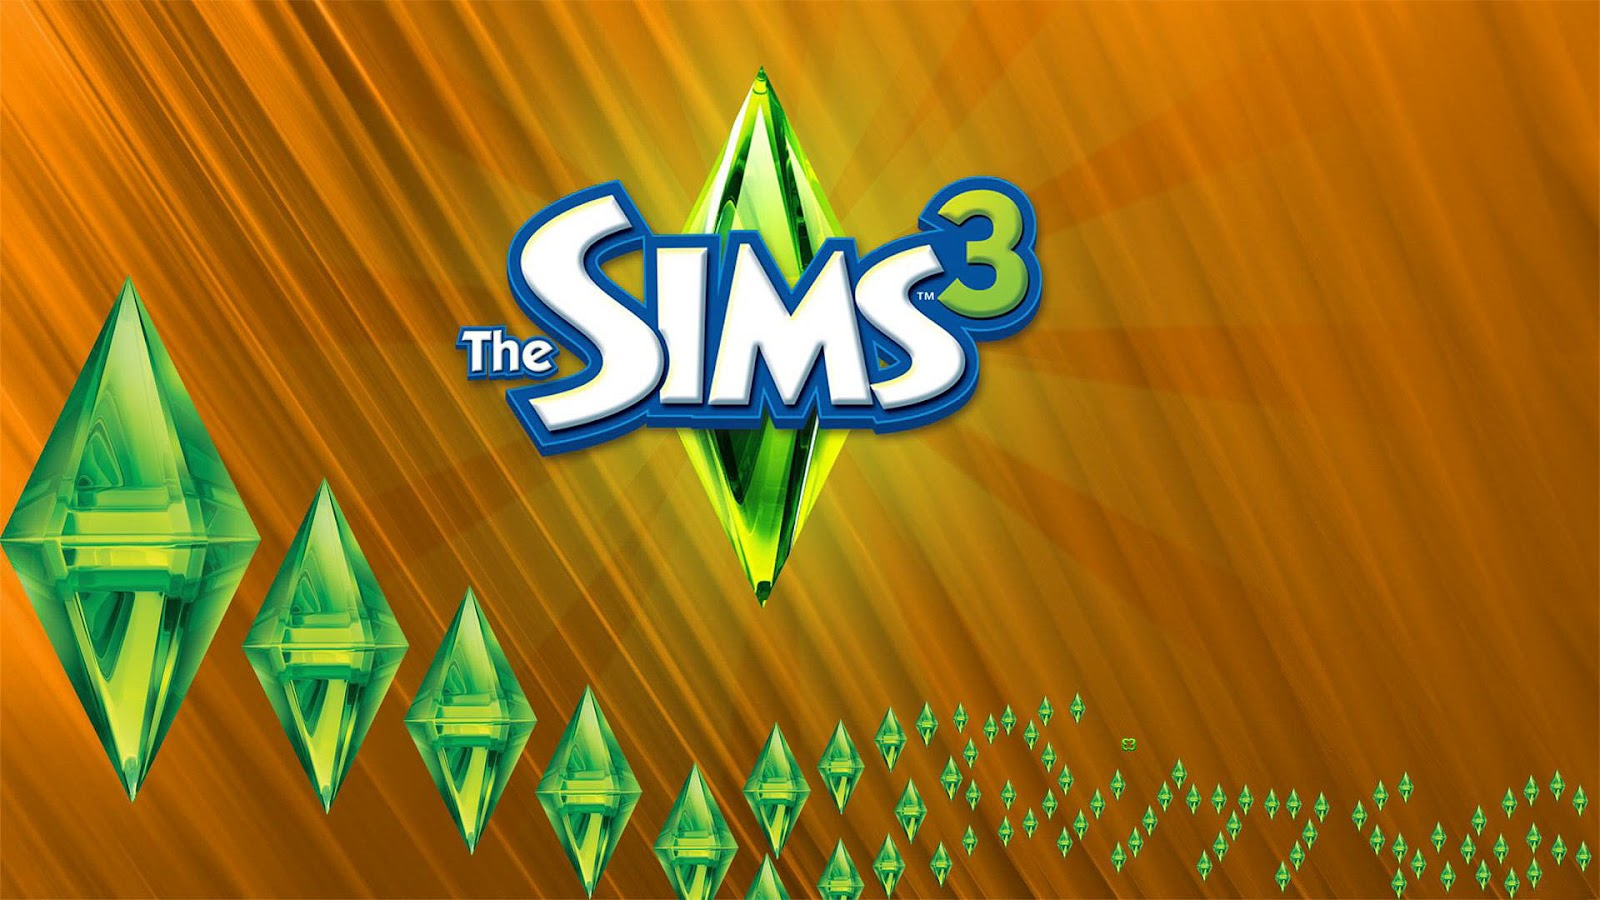 the sims backgrounds game desktop wallpaper the sims wallpapers 17jpg 1600x900